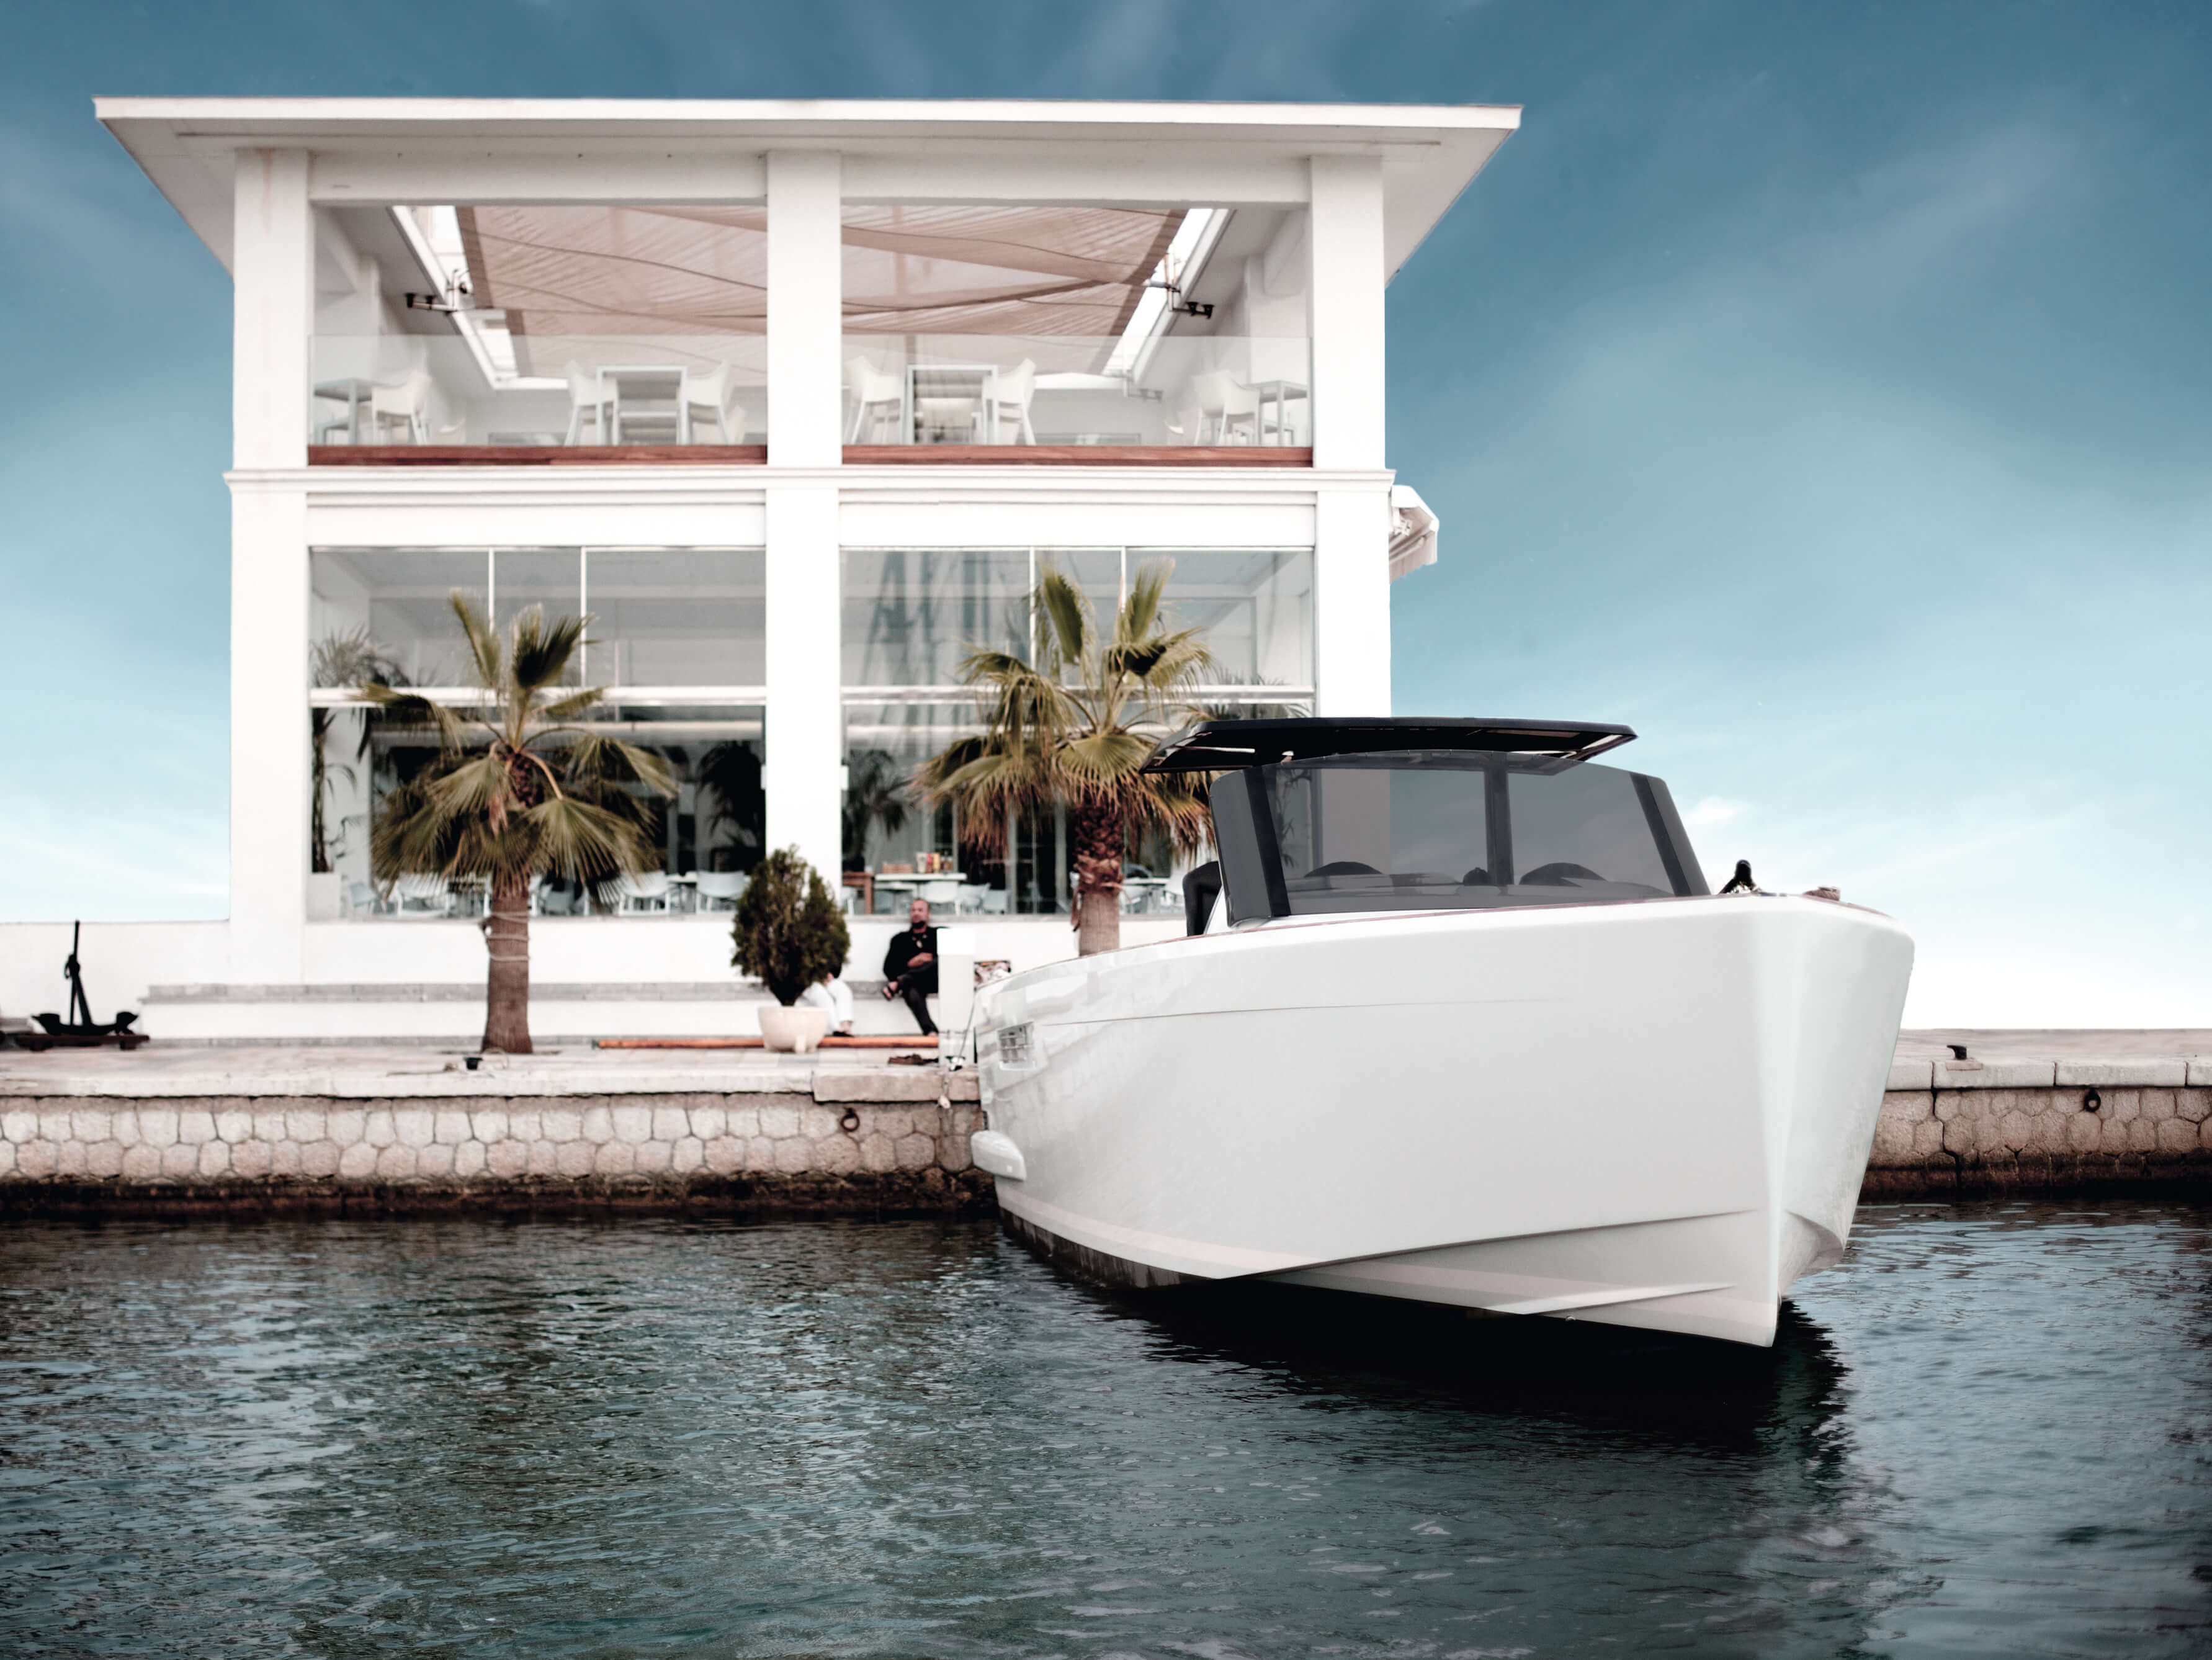 FJORD 40 open | Arrive at a vibrant summer party in style - or be the host of one. | Fjord